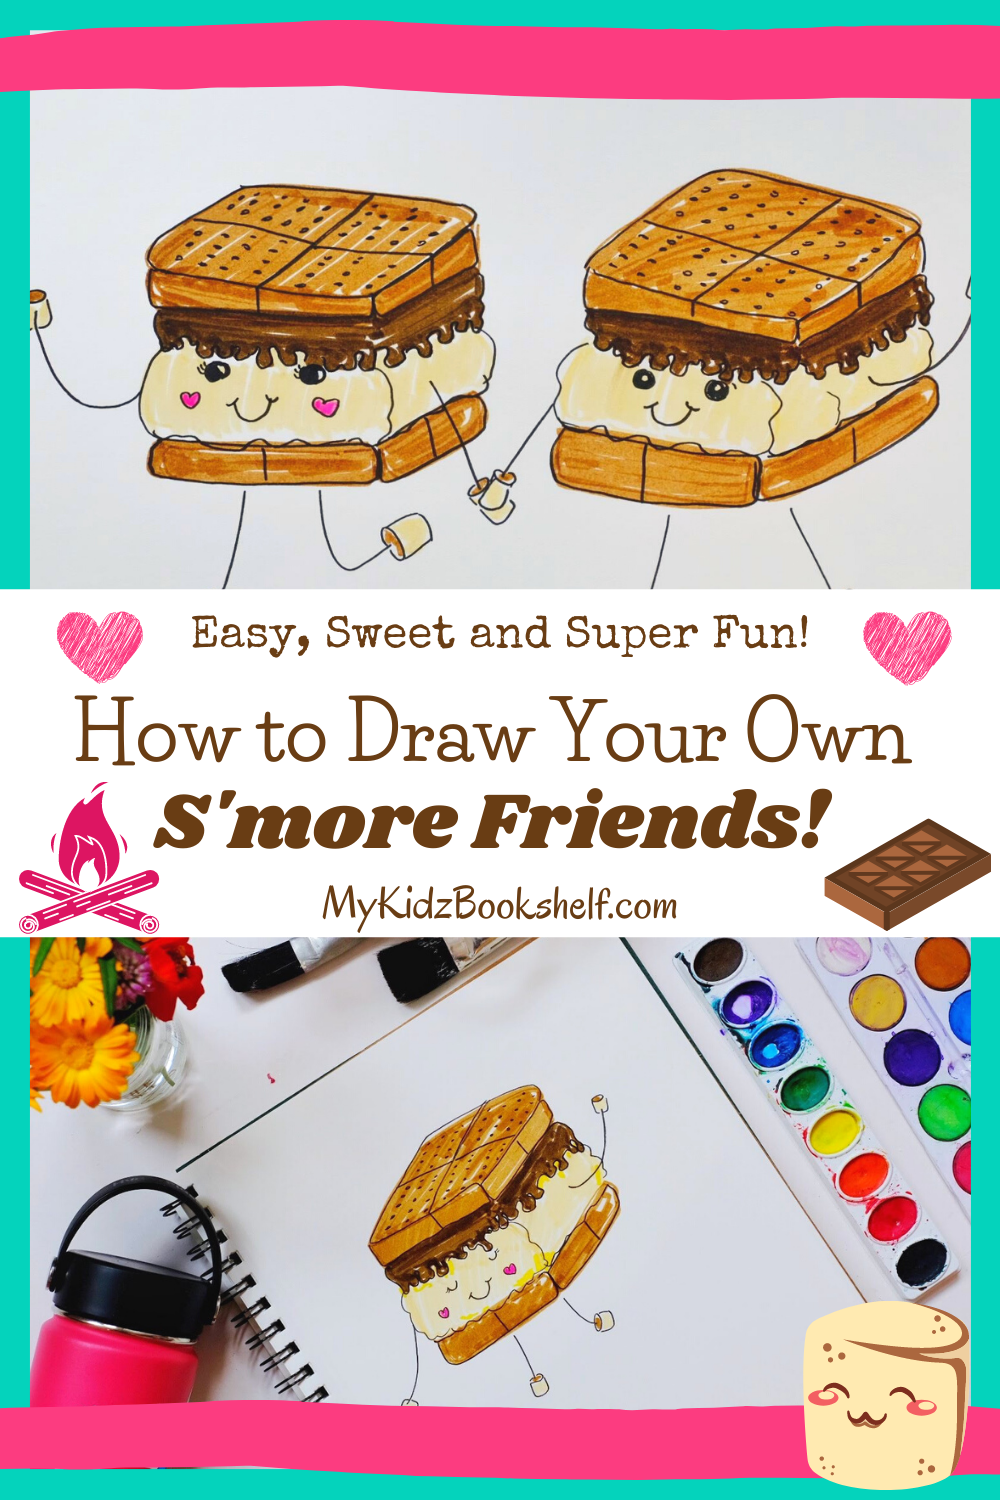 How to Draw S'more Friends pinterest pin